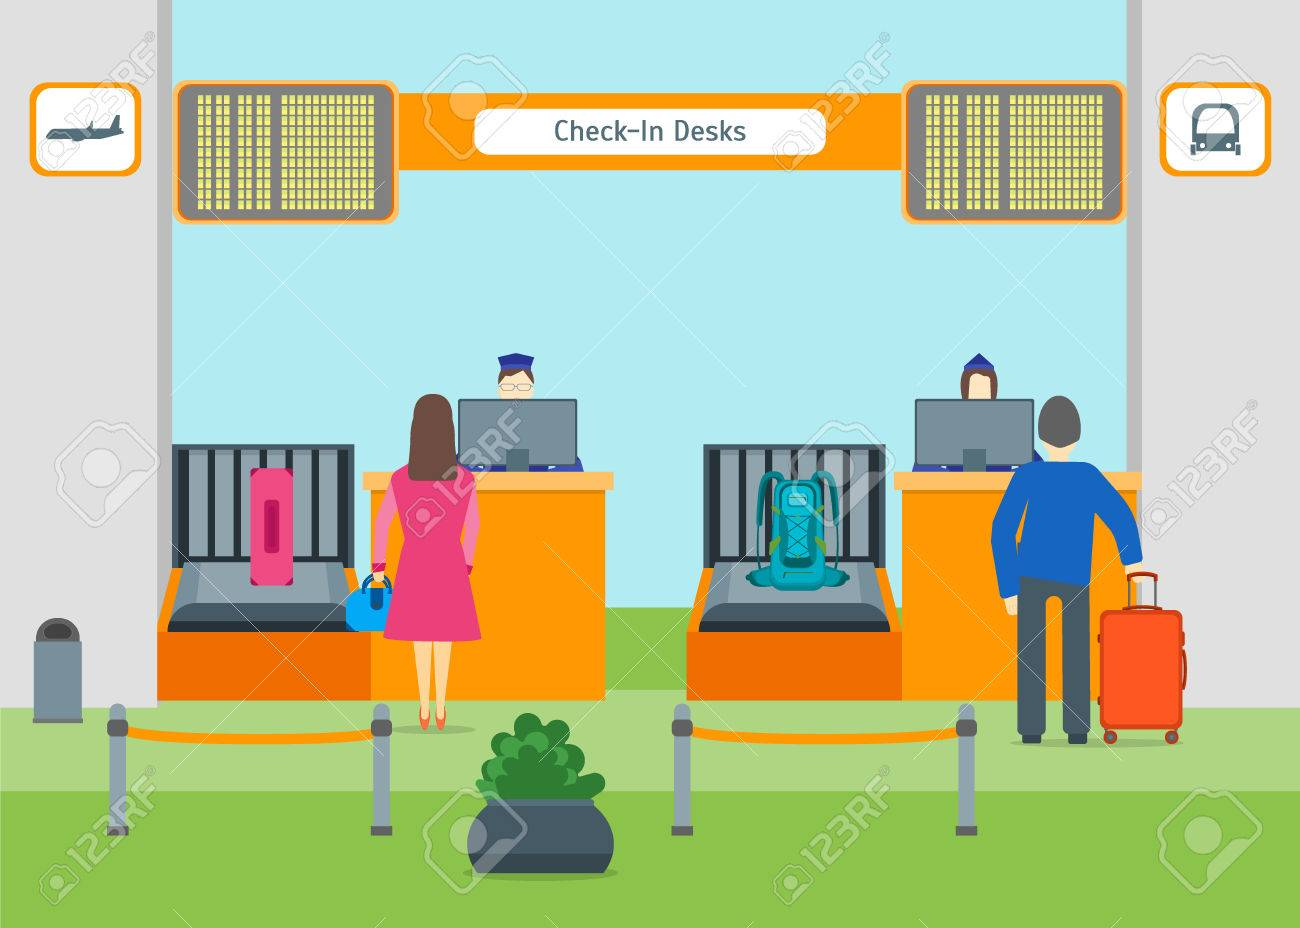 Cartoon Airport Check In Vector Royalty Free Cliparts Vectors And Stock Illustration Image 75929075